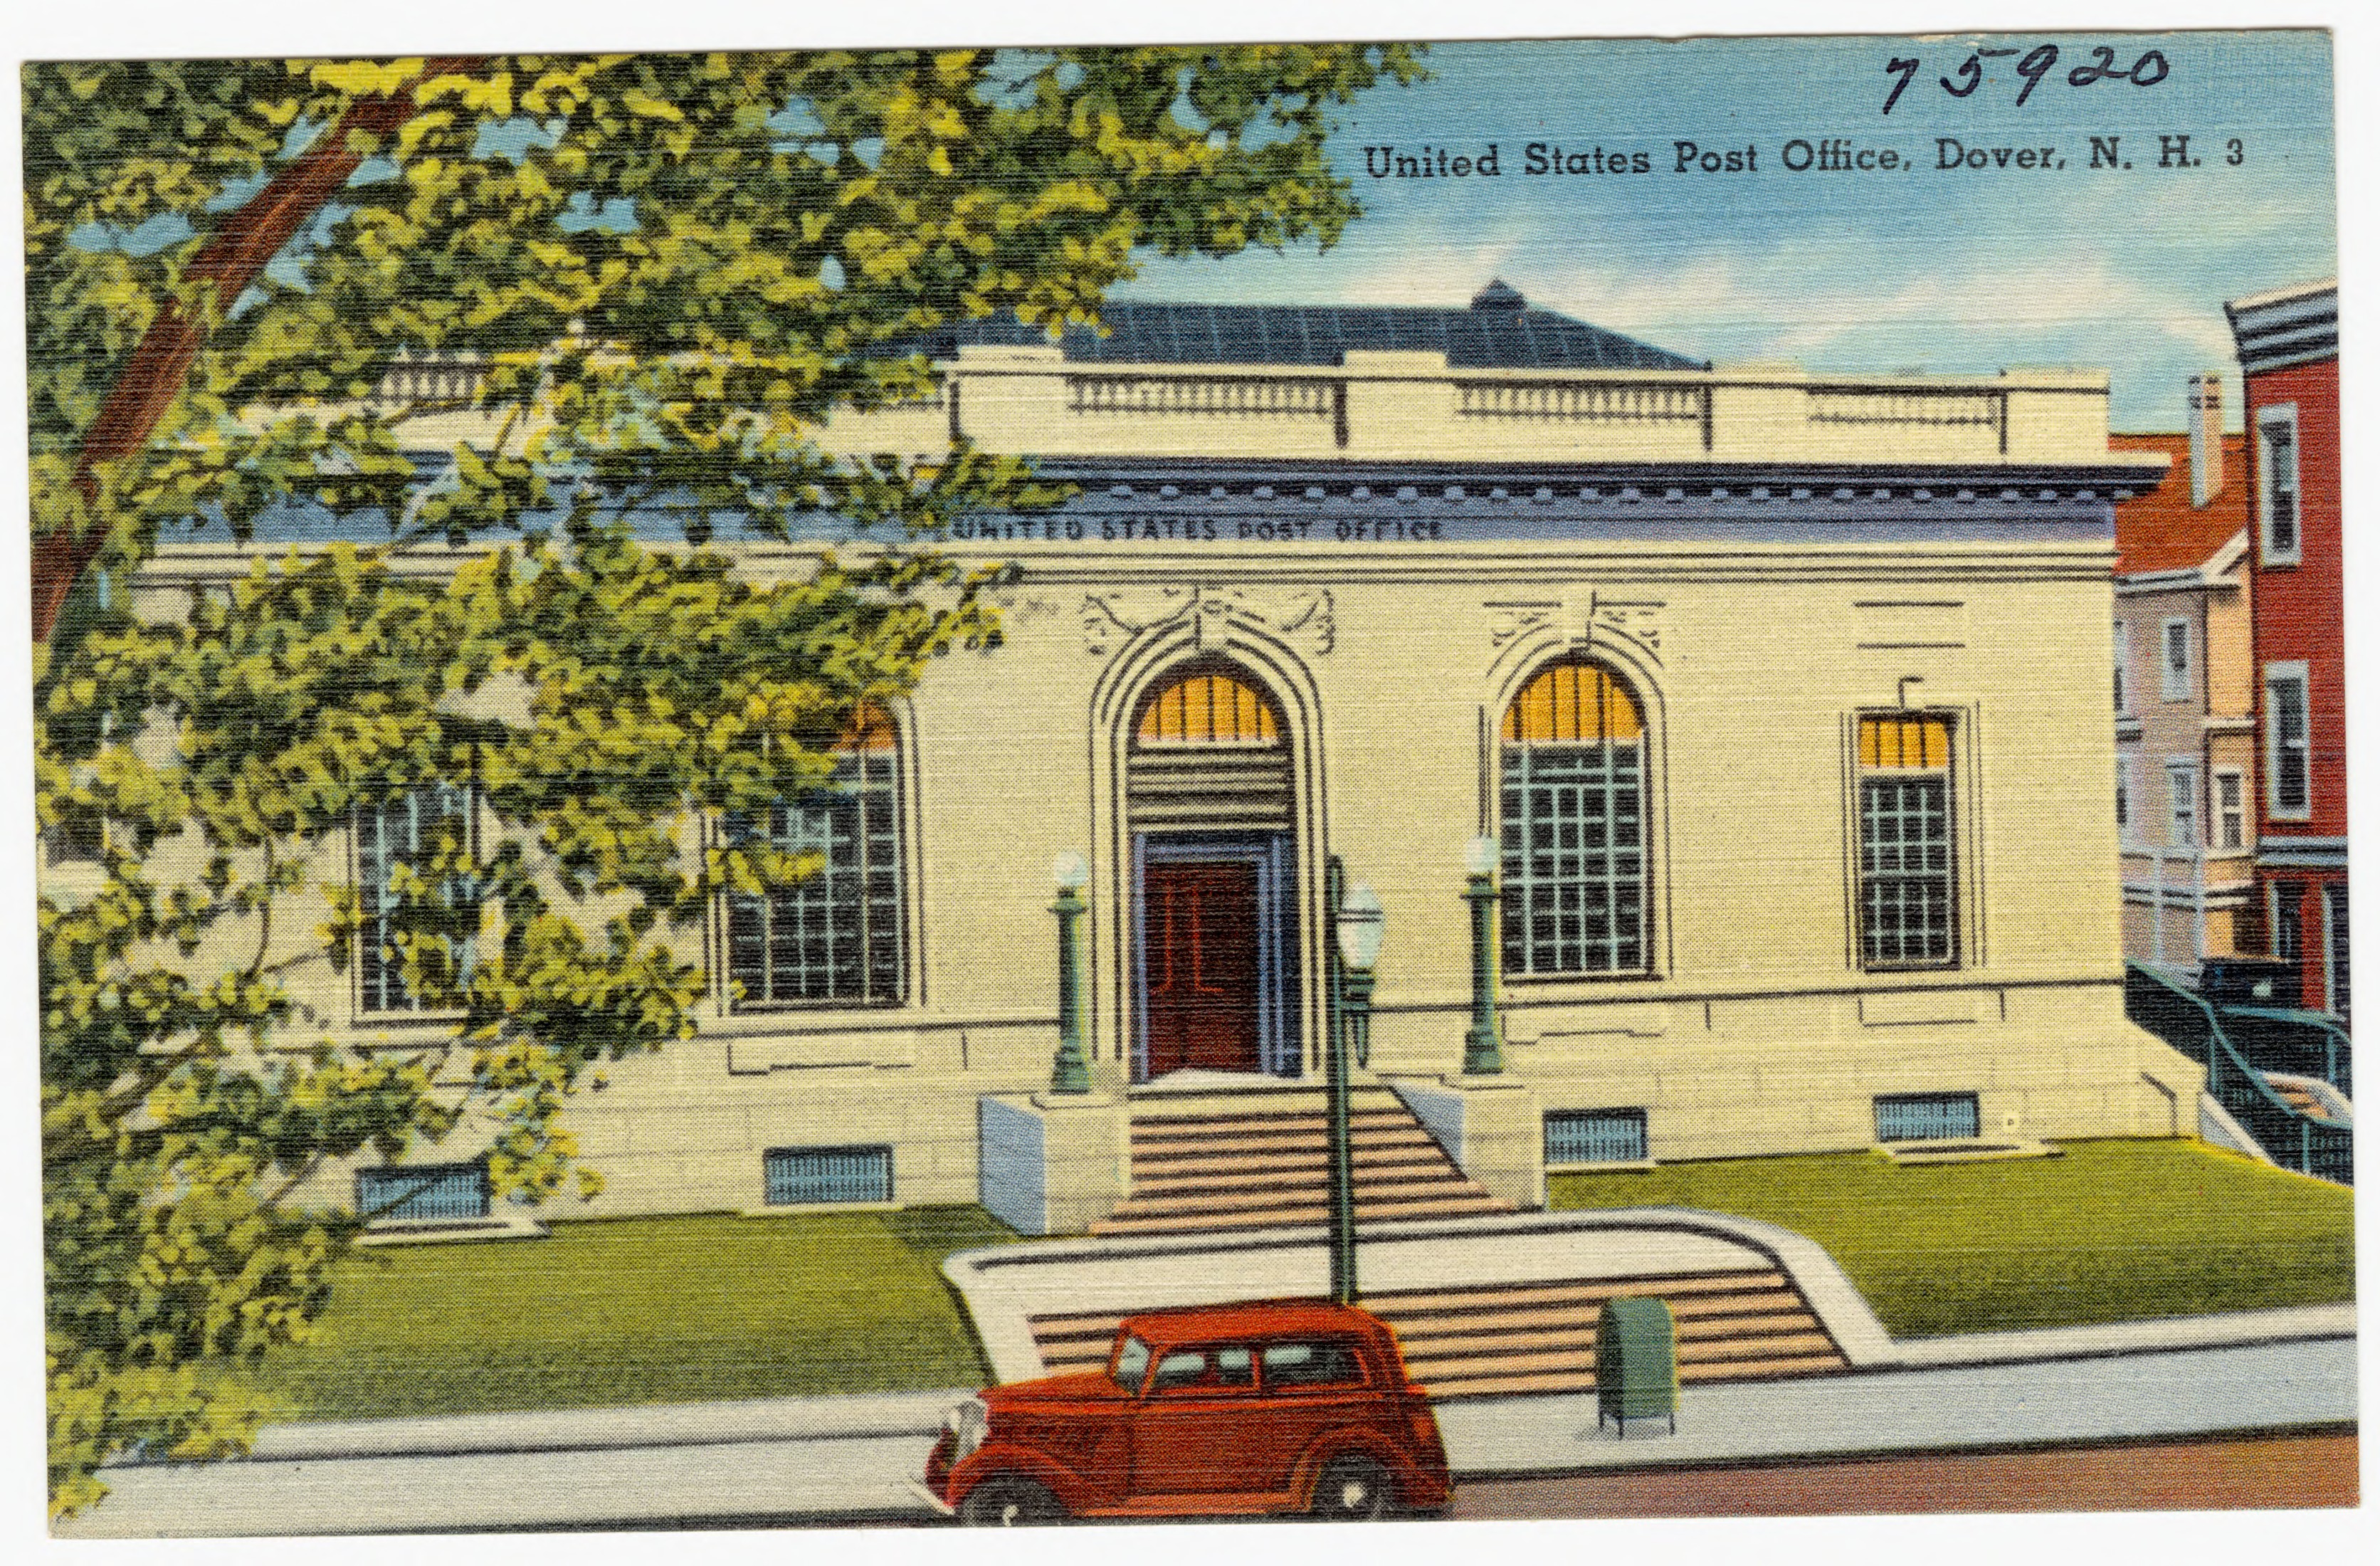 File:United States Post Office, Dover, N.H (75920).jpg ...